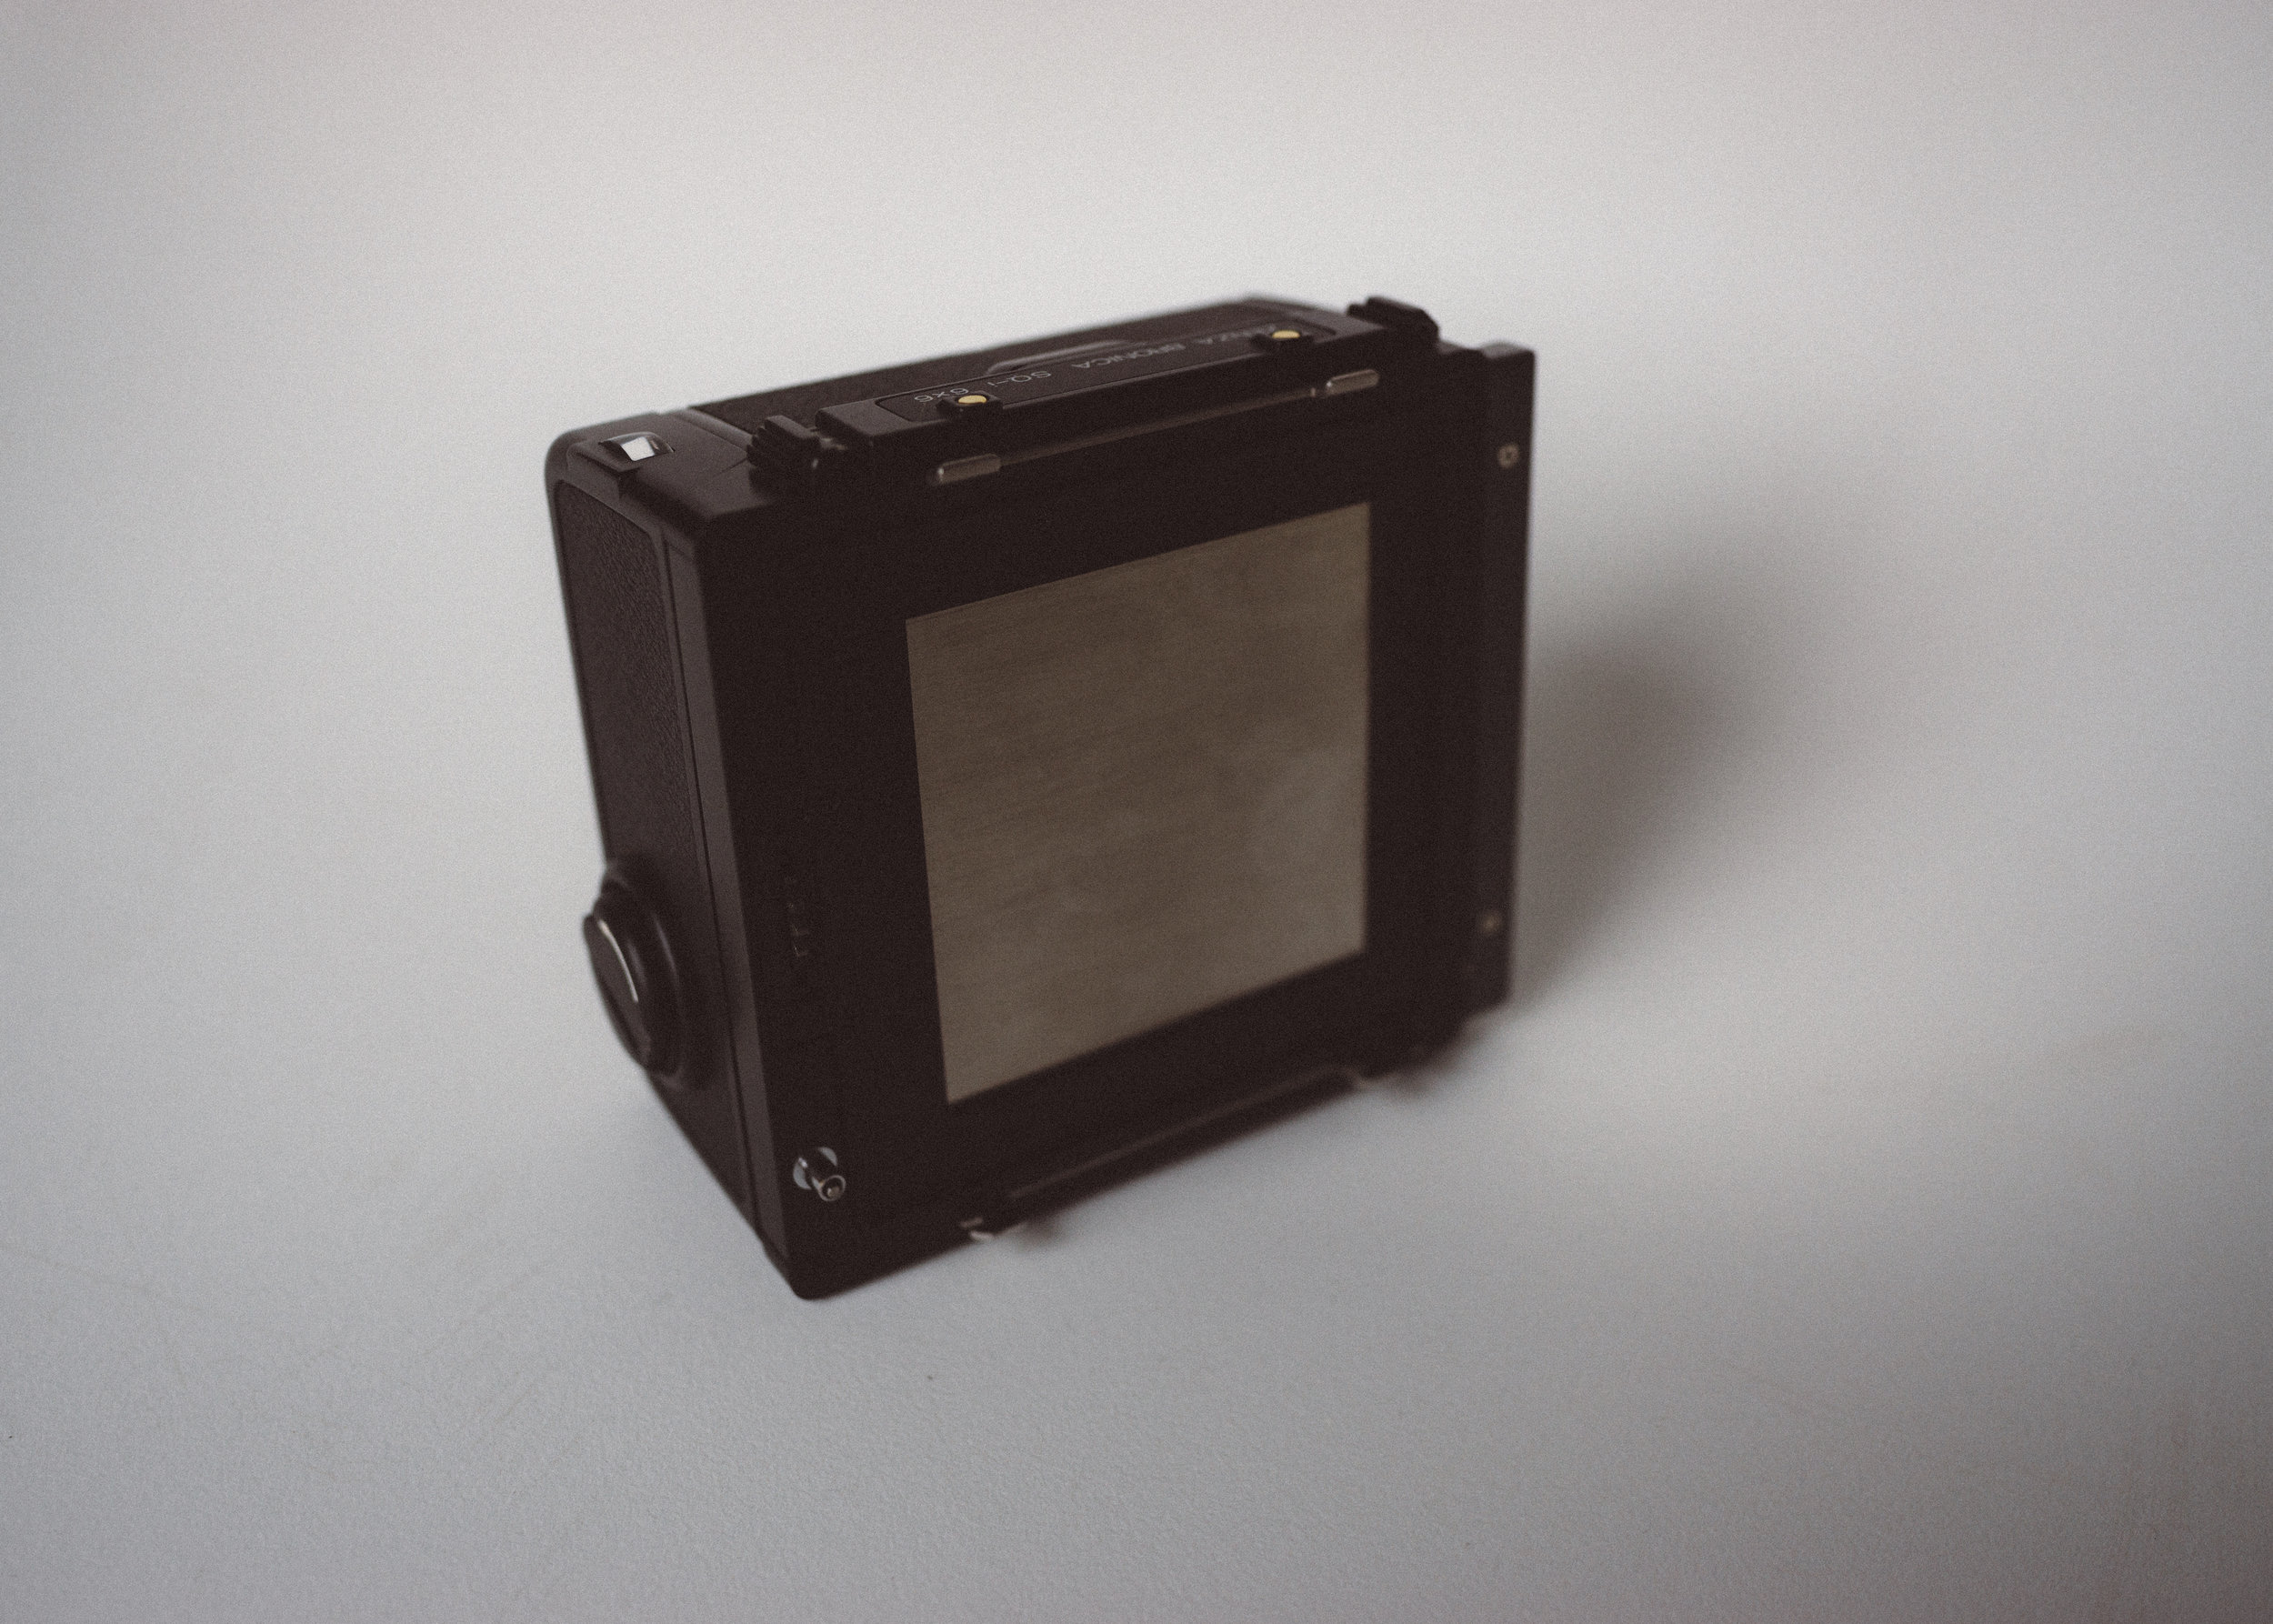 120 film back for the Bronica SQ.